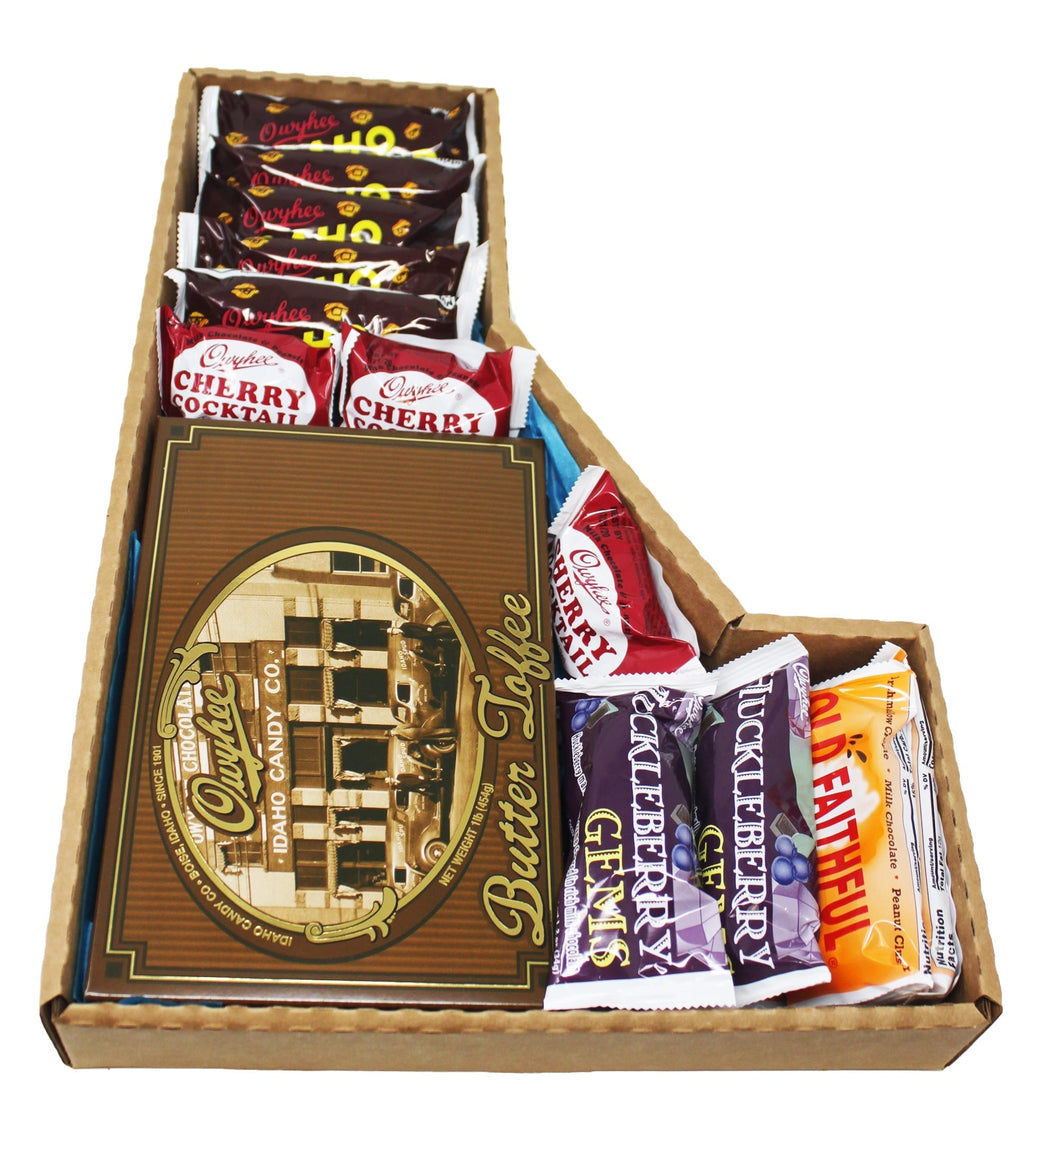 Idaho Nostalgic Candy Variety Pack Collectible Idaho Box Top